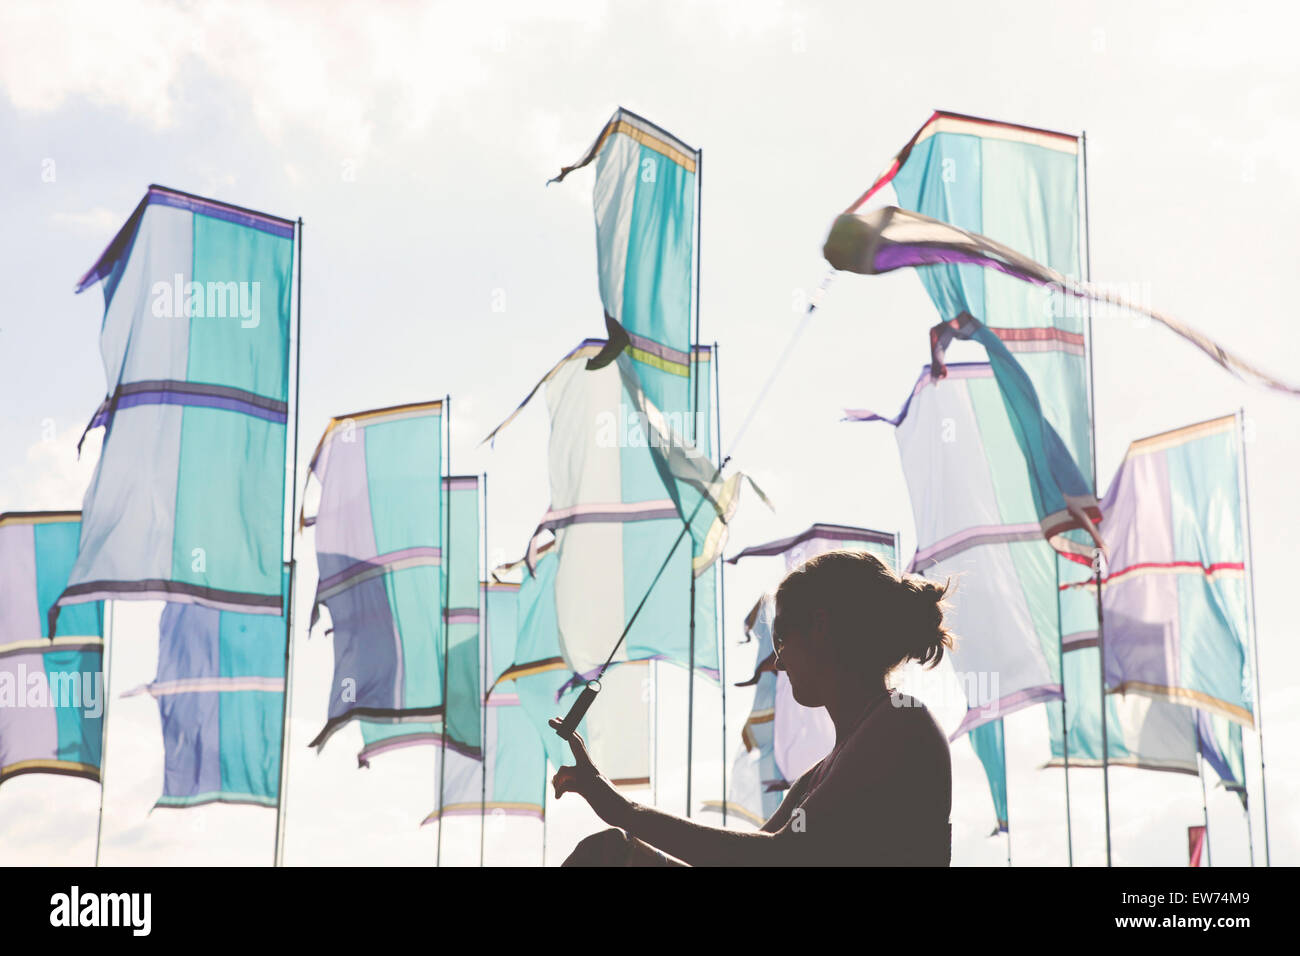 Flags and silhouette of girl dancing at summer music festival - Stock Image